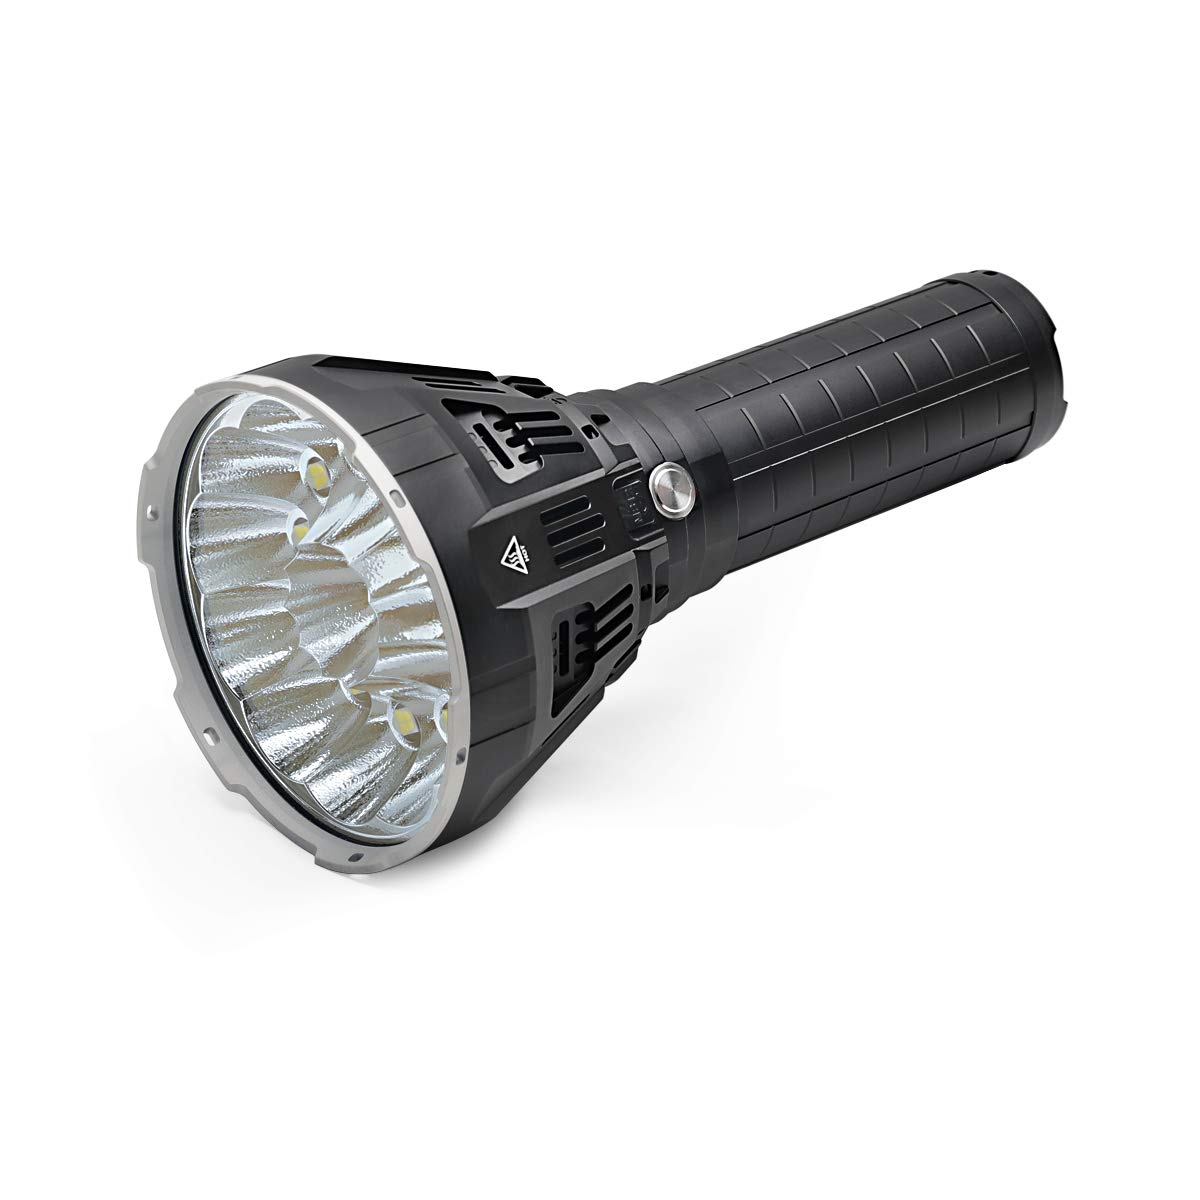 IMALENT MS12 Brightest Flashlight 53000 Lumens, Super Bright Rechargeable Torch Searchlight with 12 Pieces CREE XHP70 LEDs, Built in Cooling Fan, Long Beam Distance 913 Meters